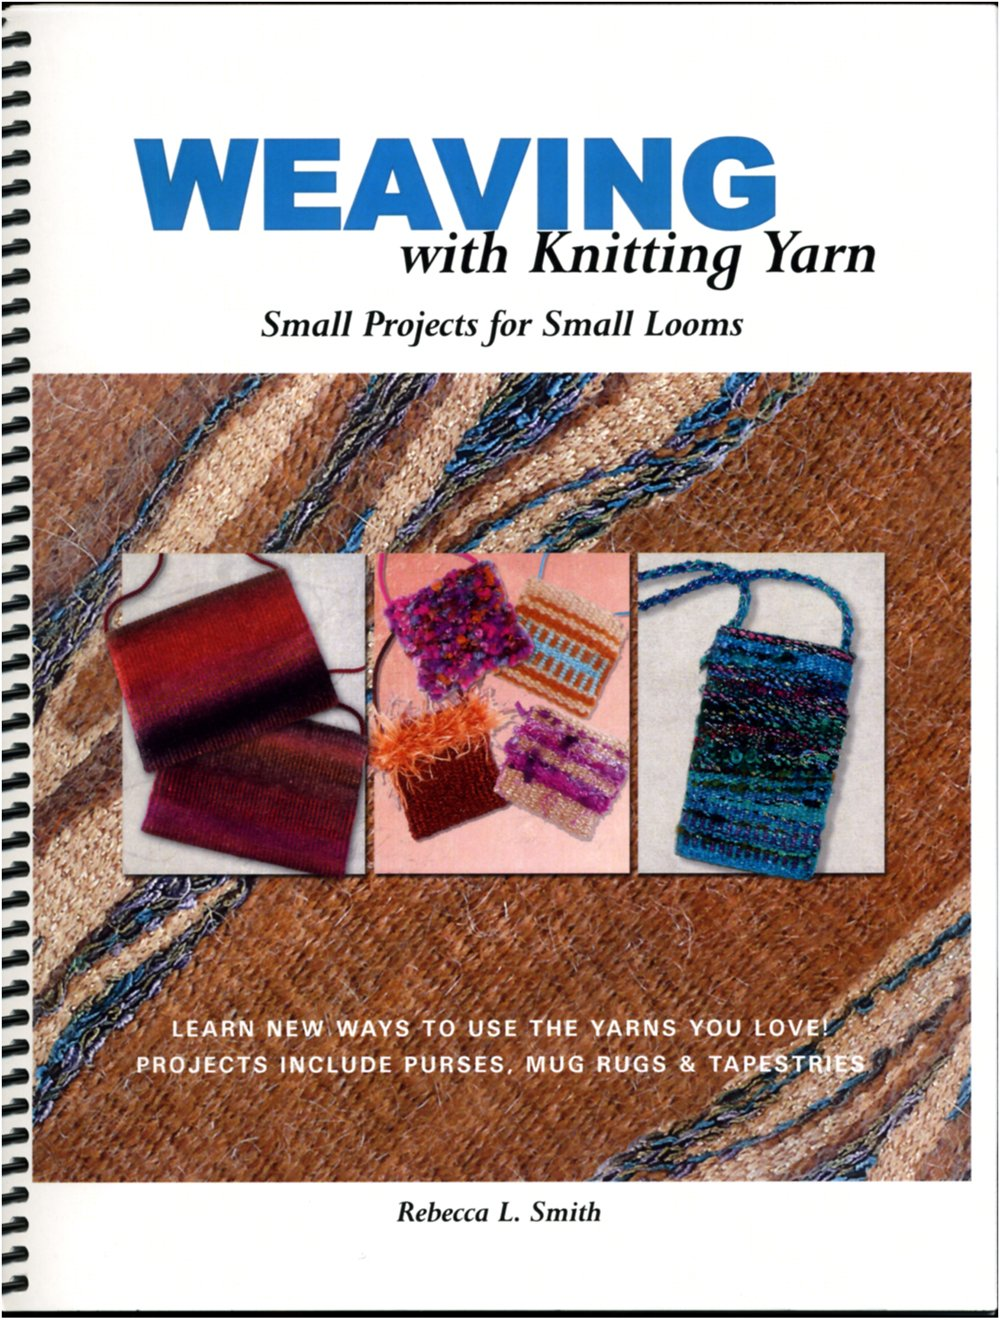 Weaving with Knitting Yarn: Small Projects for Small Looms